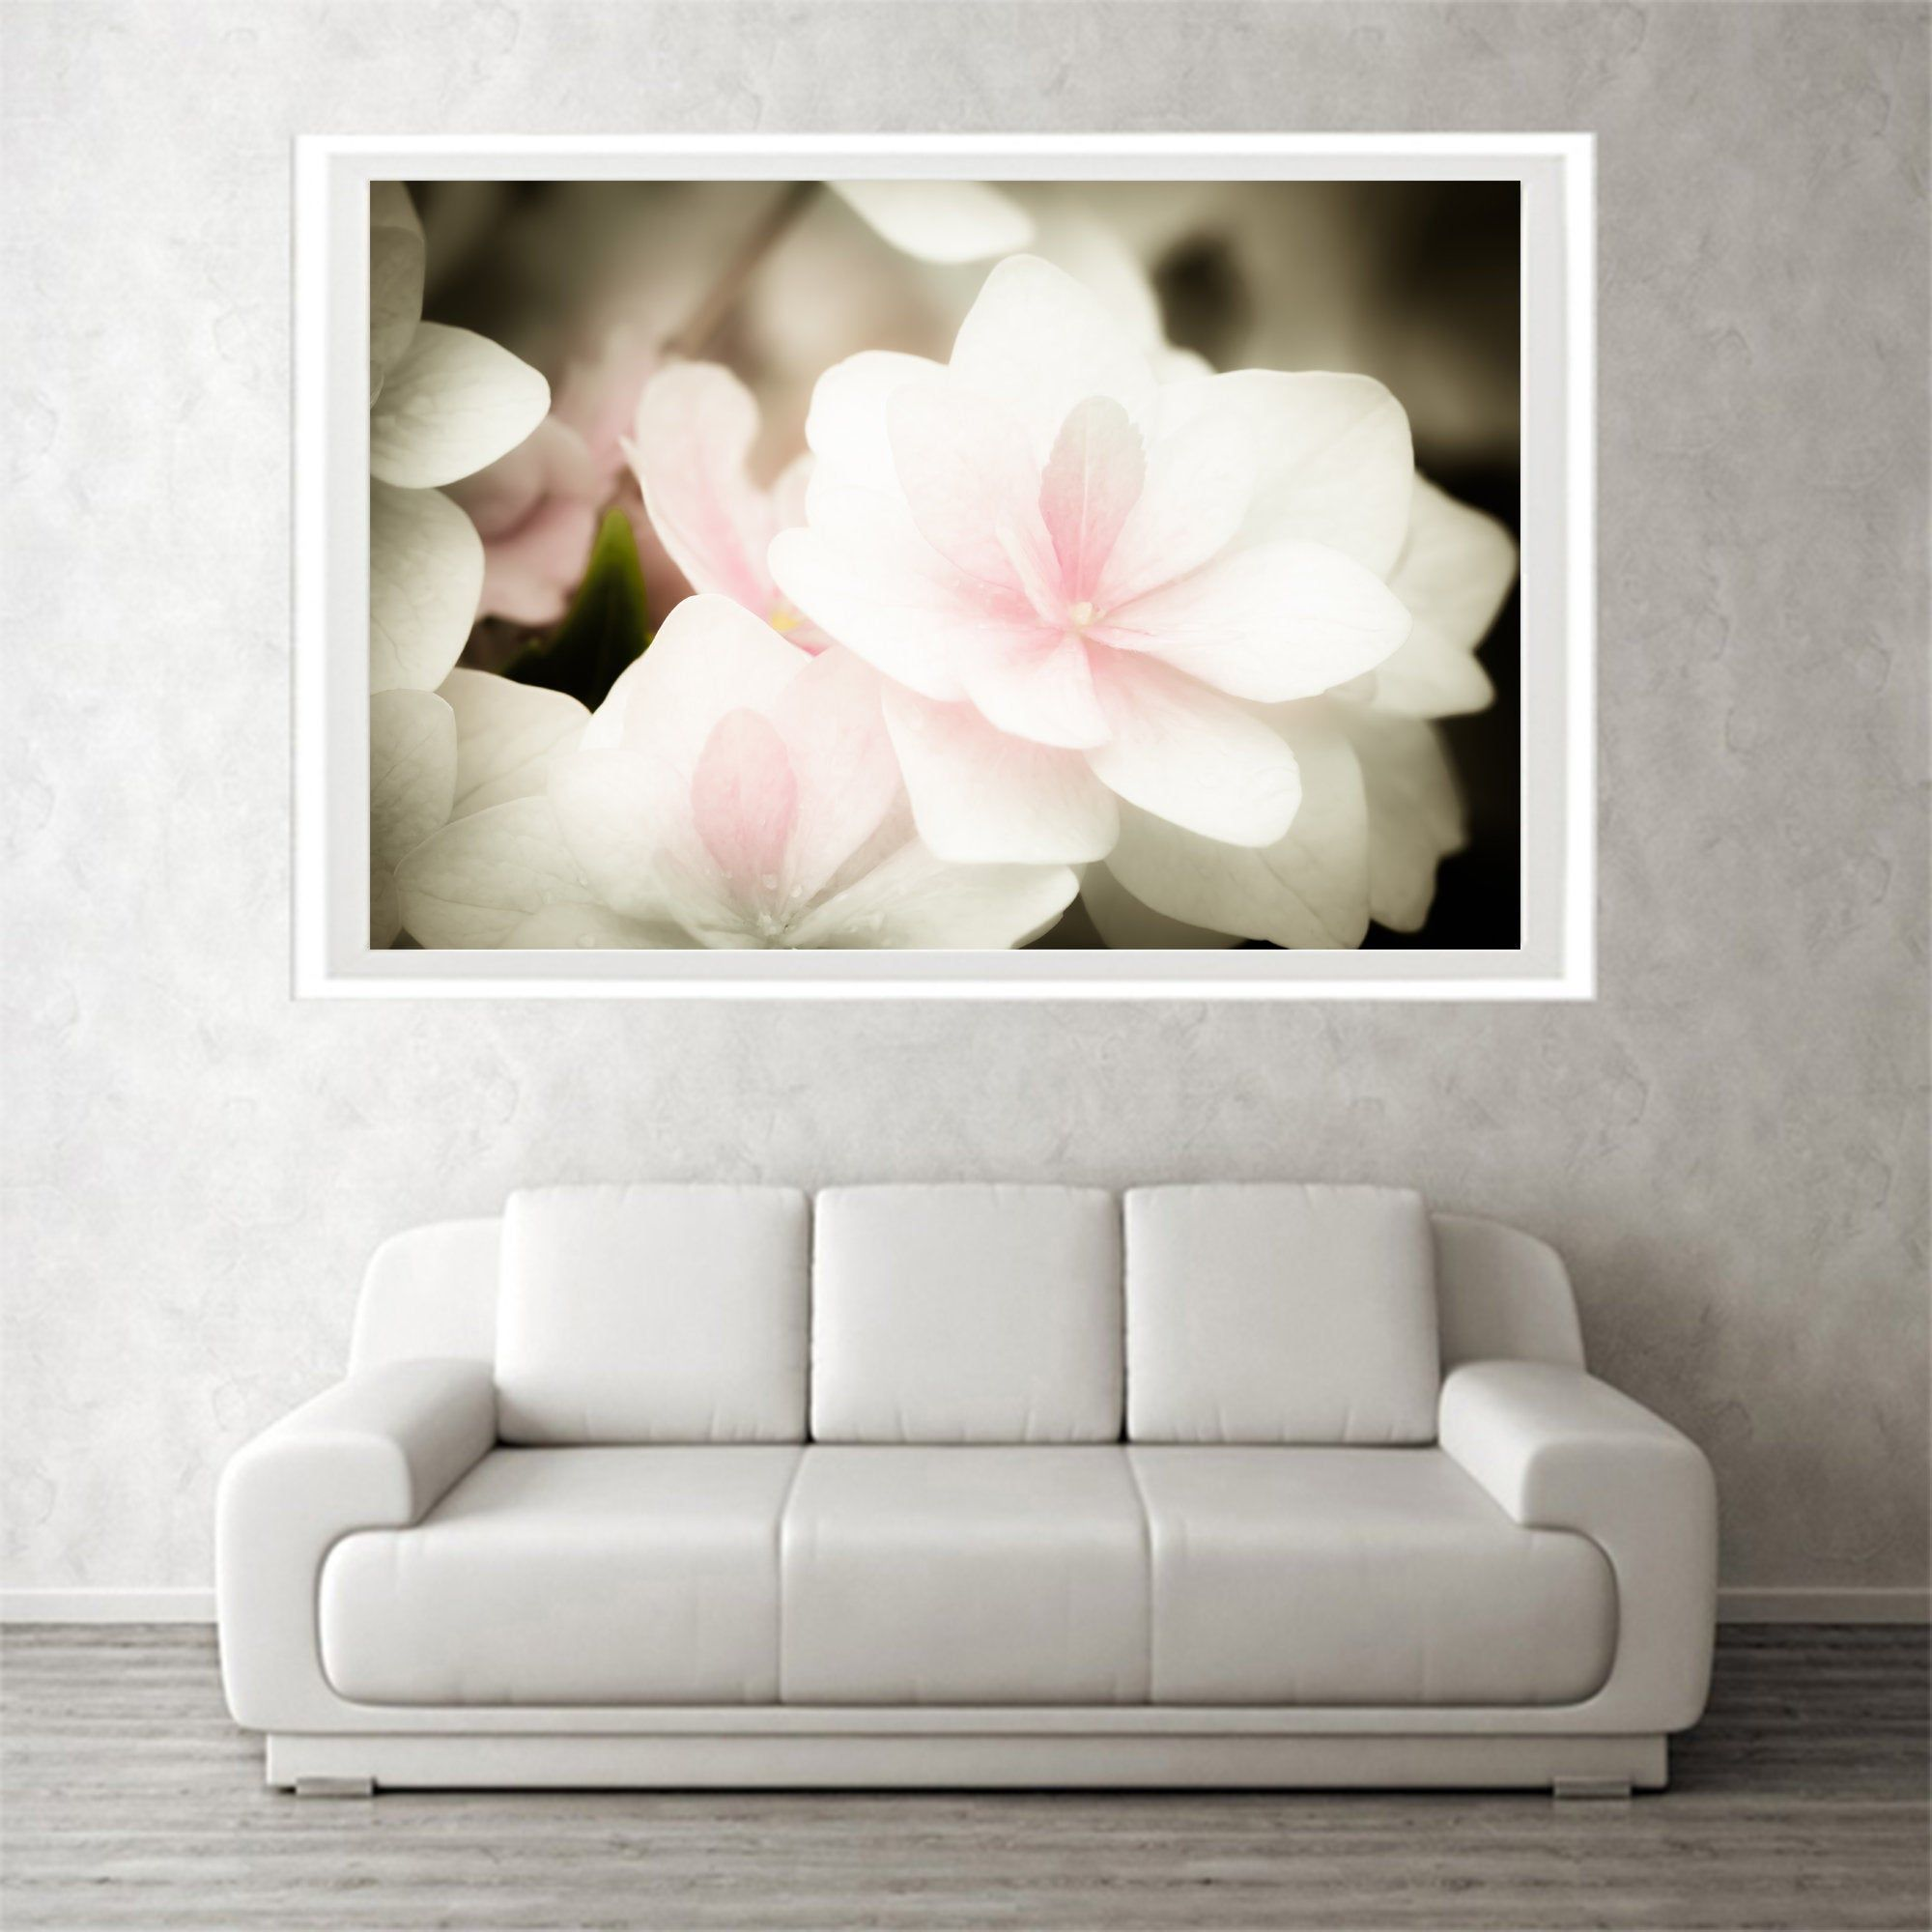 Excellent Screen Metal Wall Art Flowers Suggestions In 2020 Metal Flower Wall Art Australia Wall Art Photography Prints Art